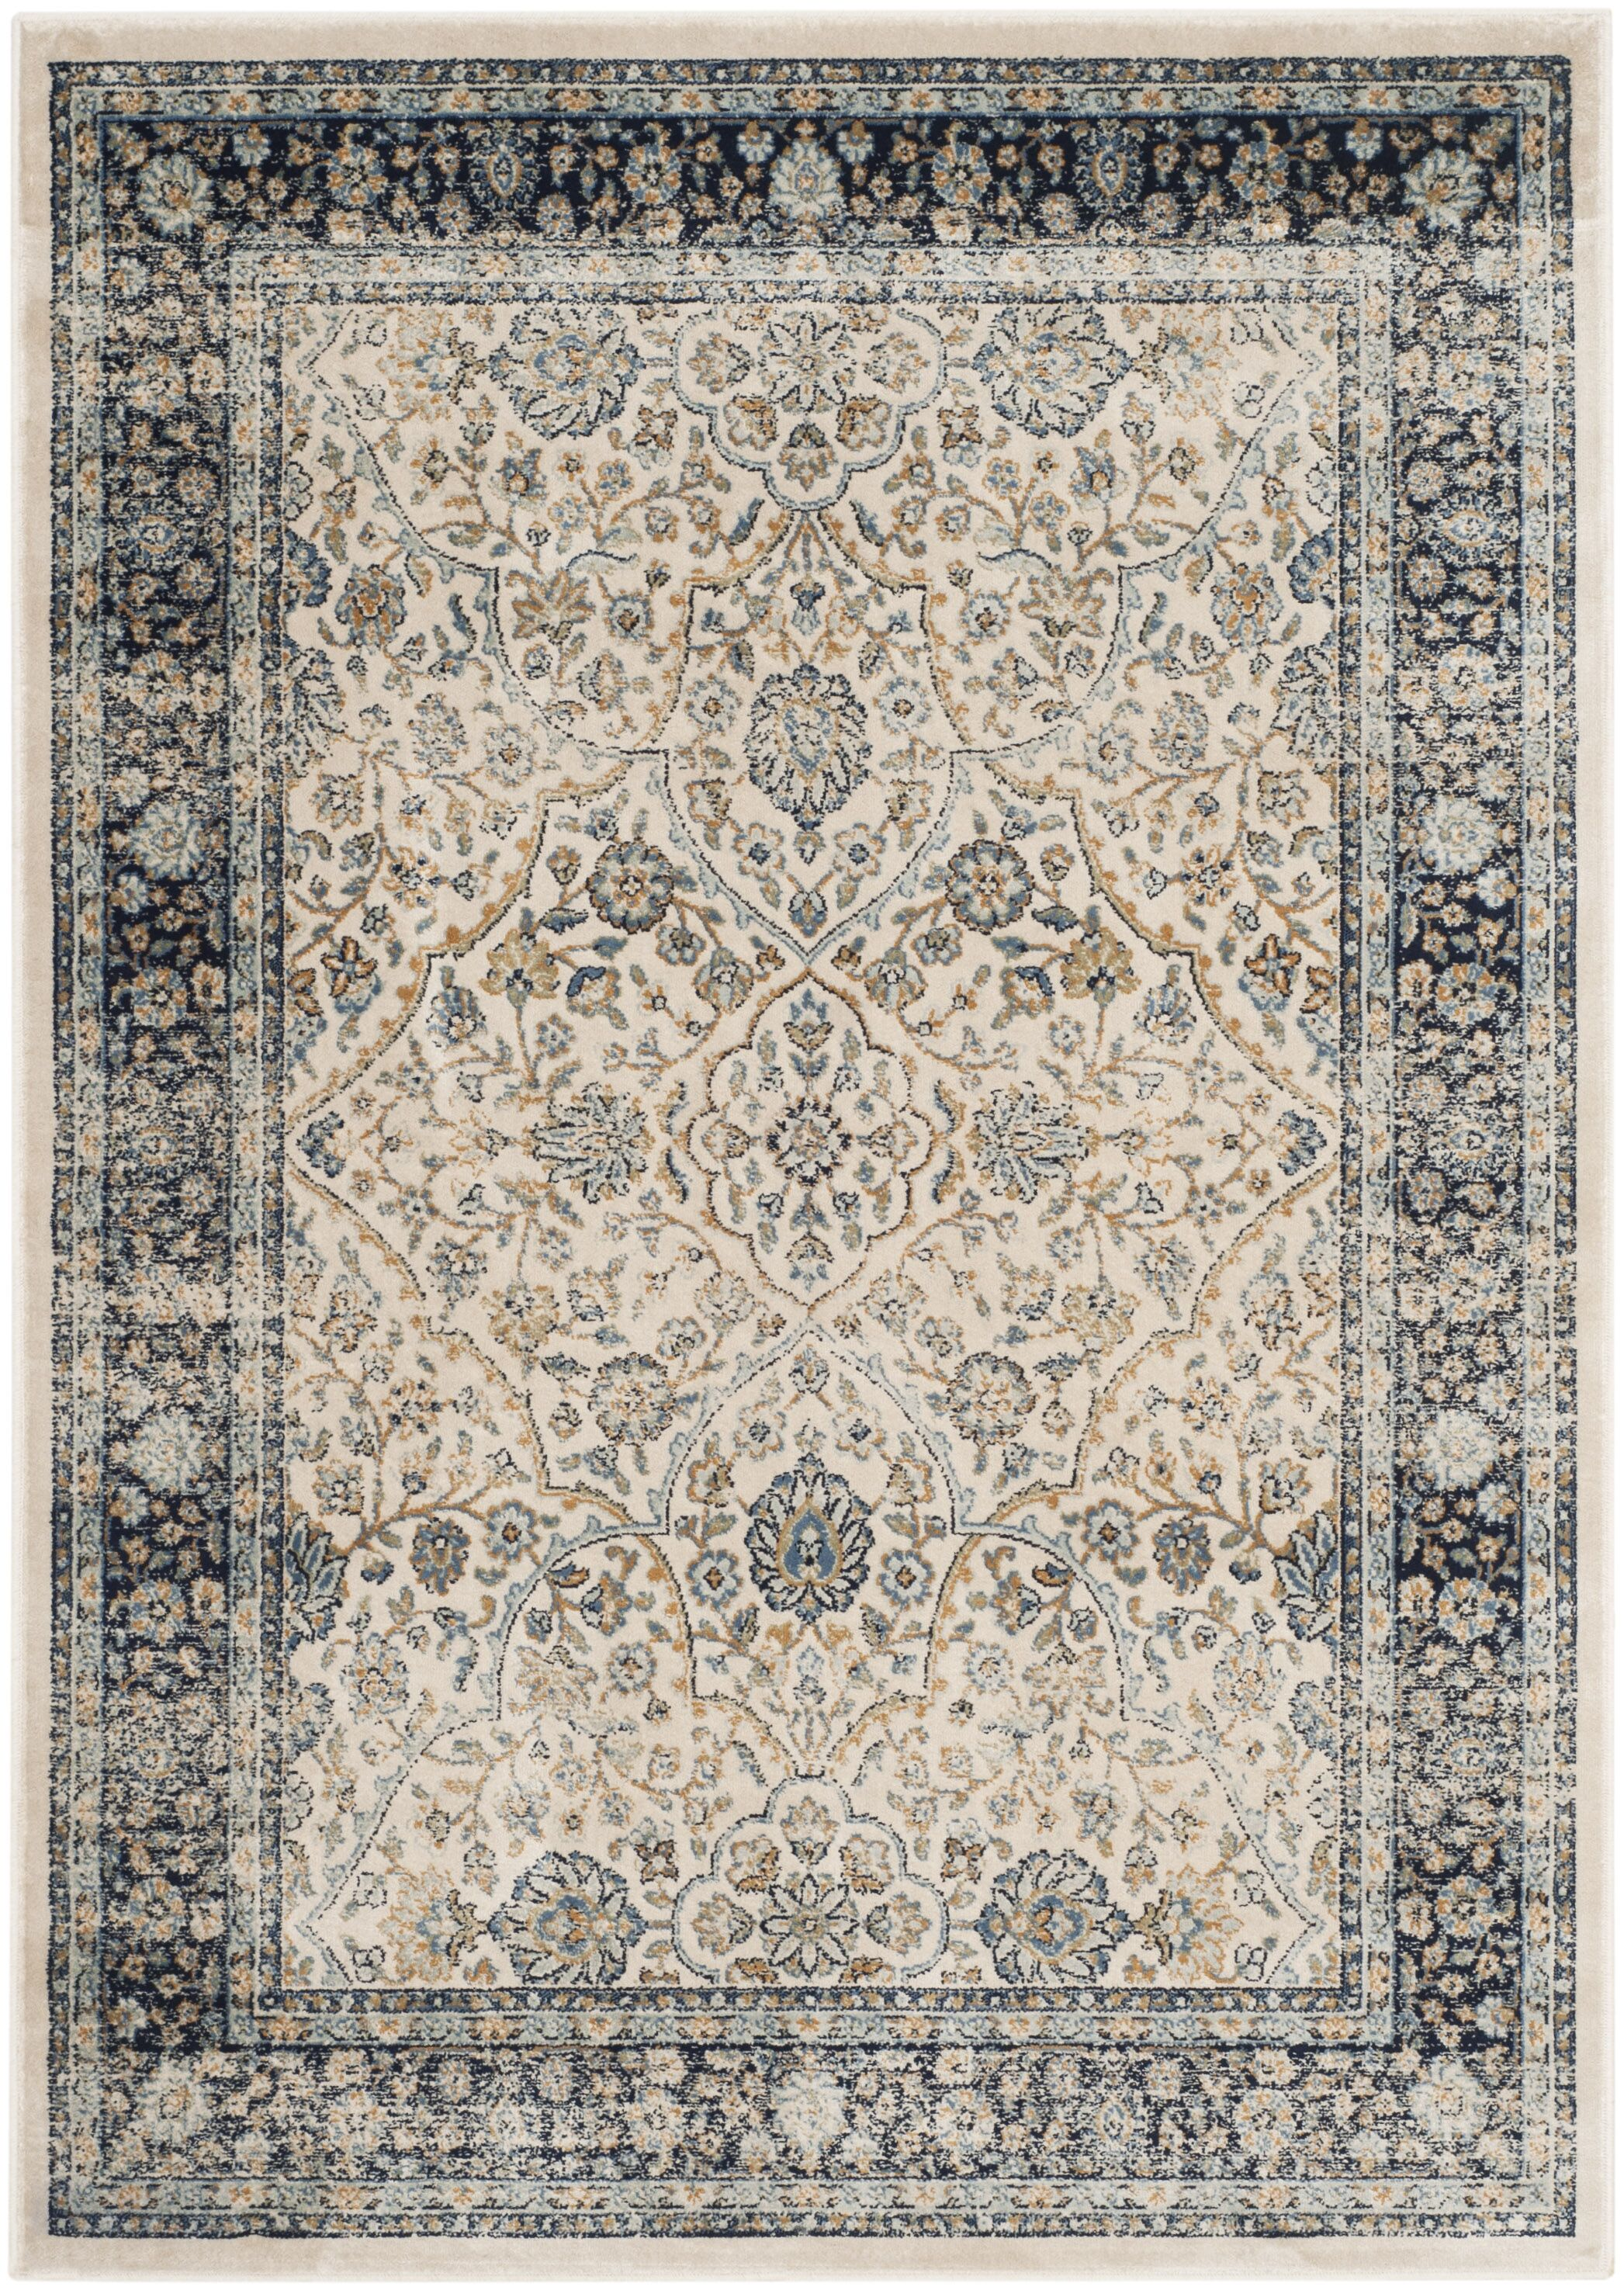 Persian Garden Vintage Ivory/Navy Area Rug Rug Size: Rectangle 6'7